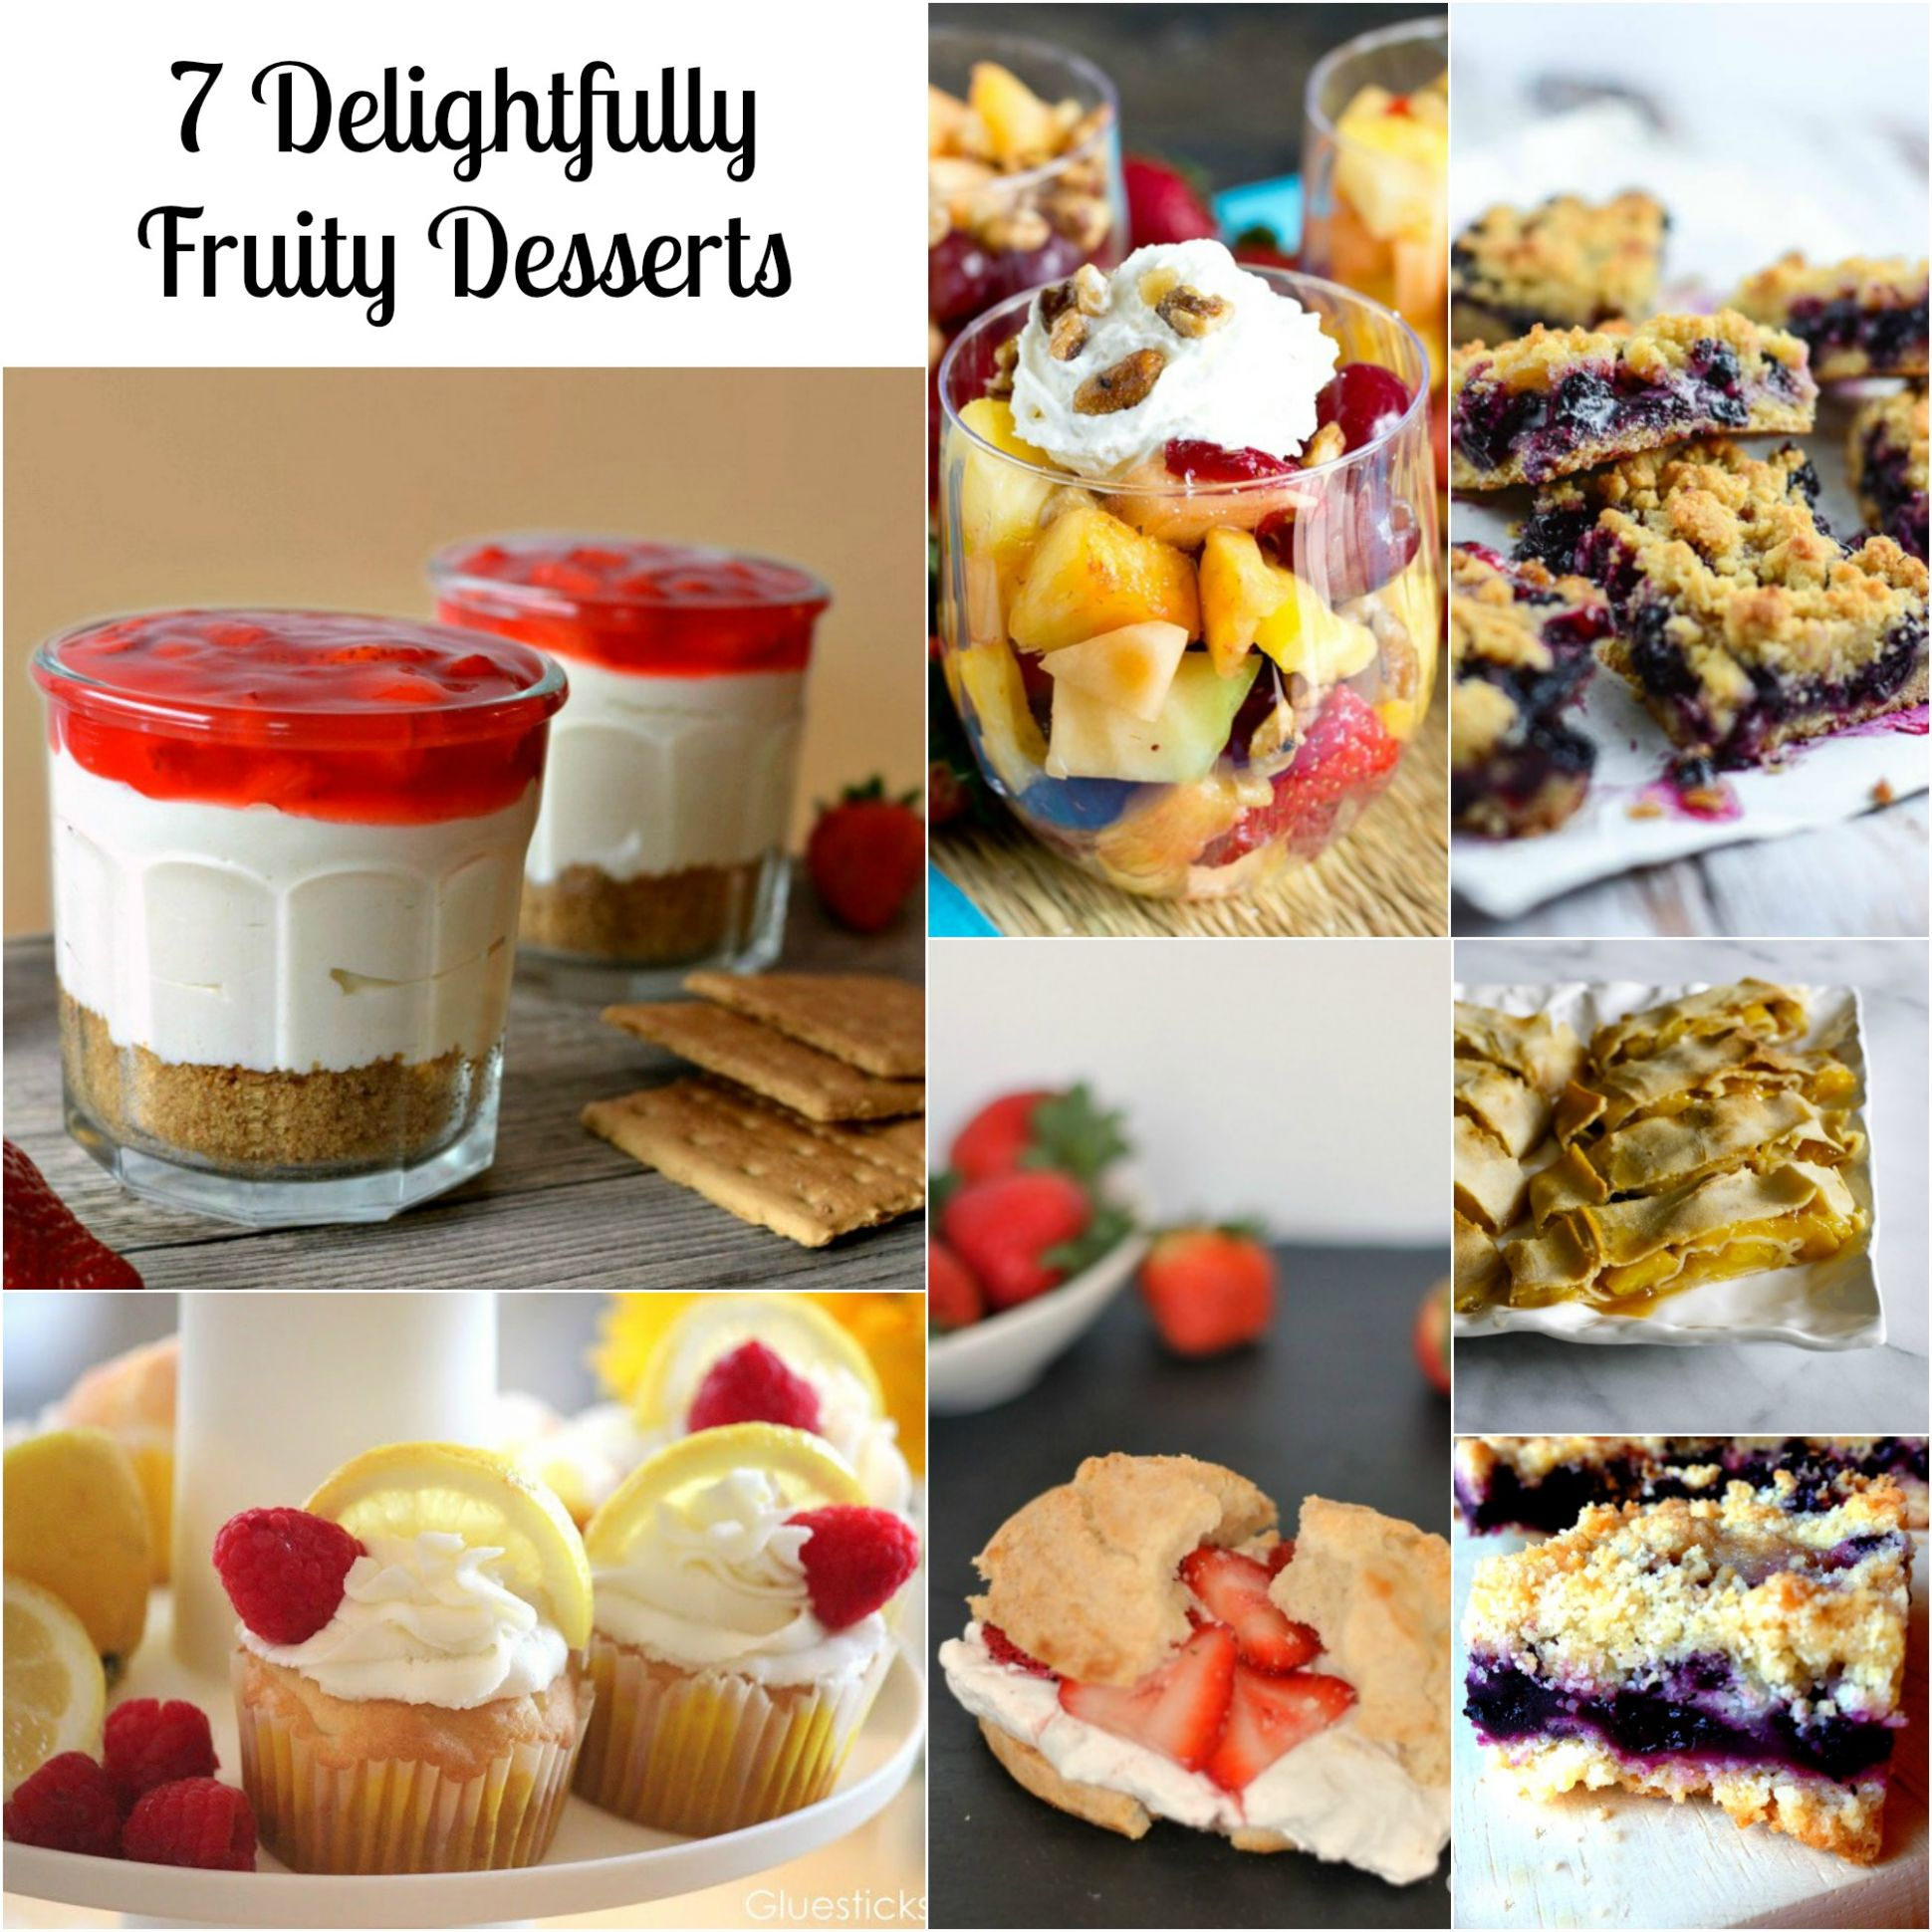 10 Summer Dessert Recipes You Have to Try - SoFabFood - Dessert Recipes You Have To Try